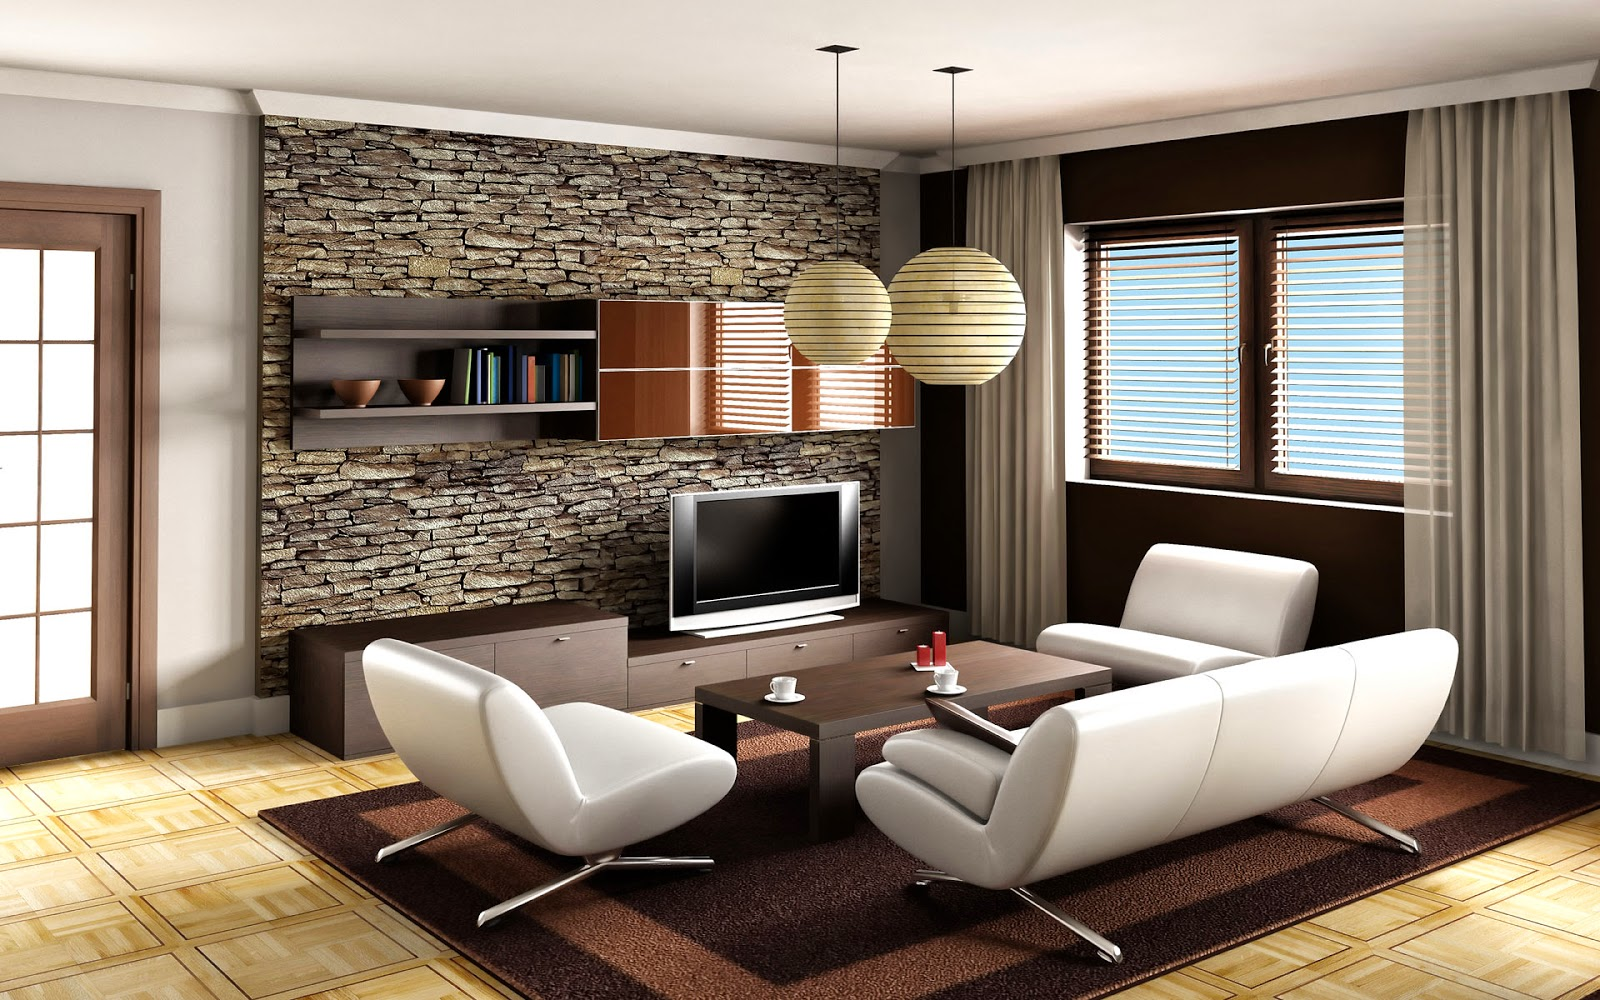 2 Living Room Decor Ideas Brown Leather Sofa Home  : livingroomdecorideaswithsectional from maritimosempre.blogspot.com size 1600 x 1000 jpeg 379kB